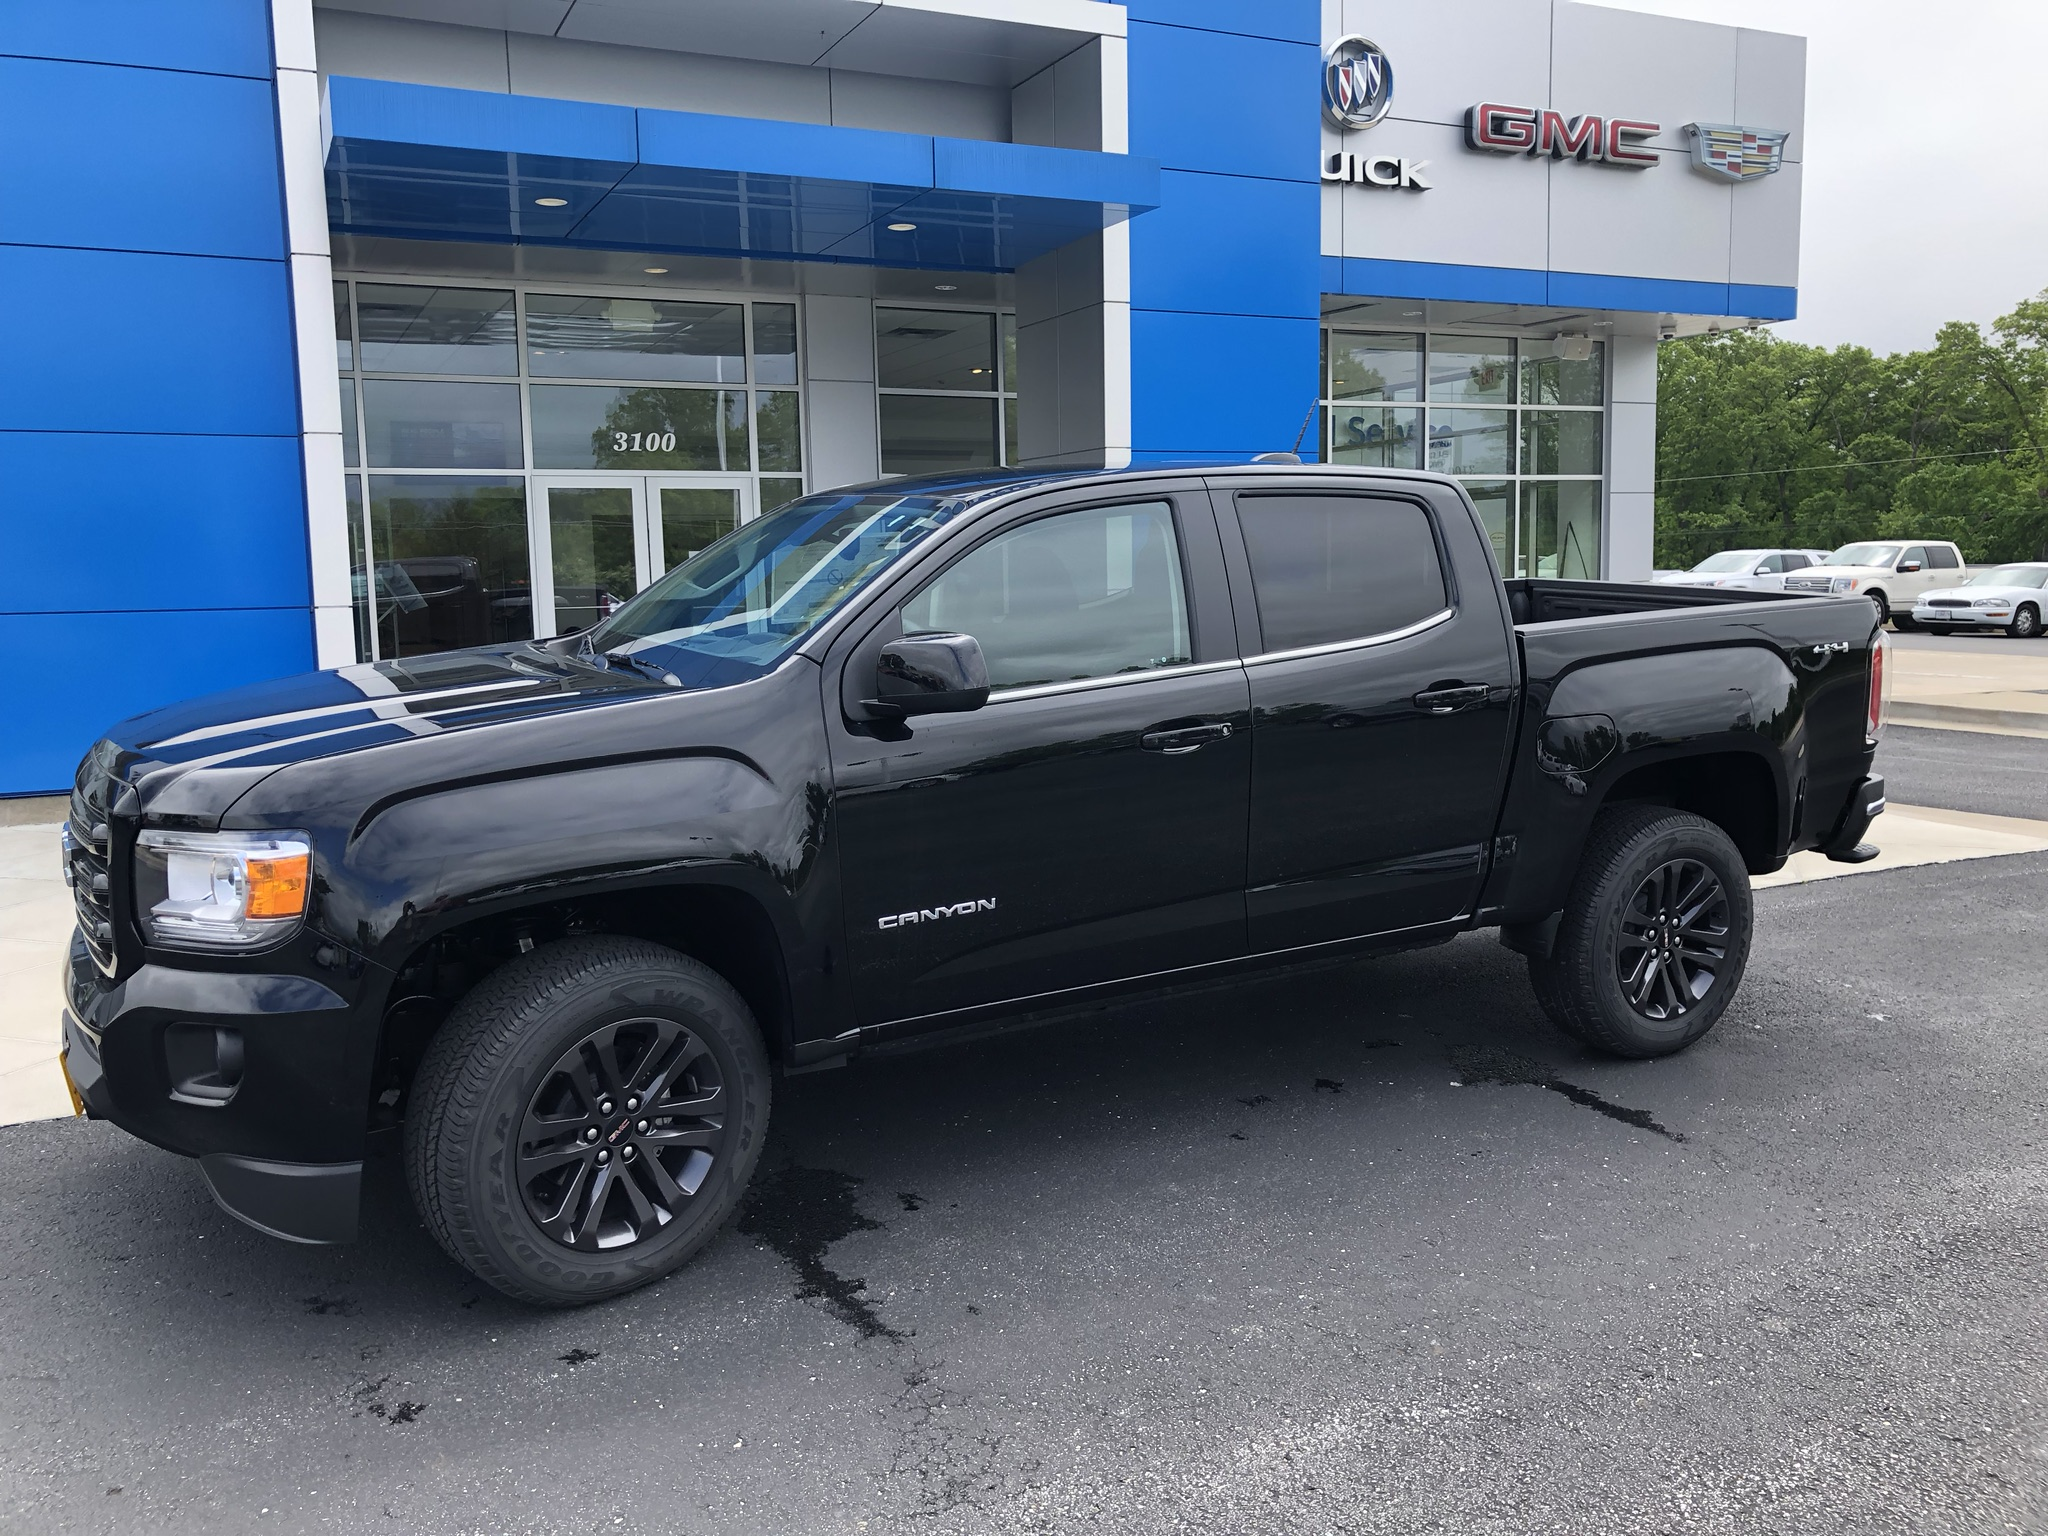 A 2020 GMC Canyon 4 by 4 truck